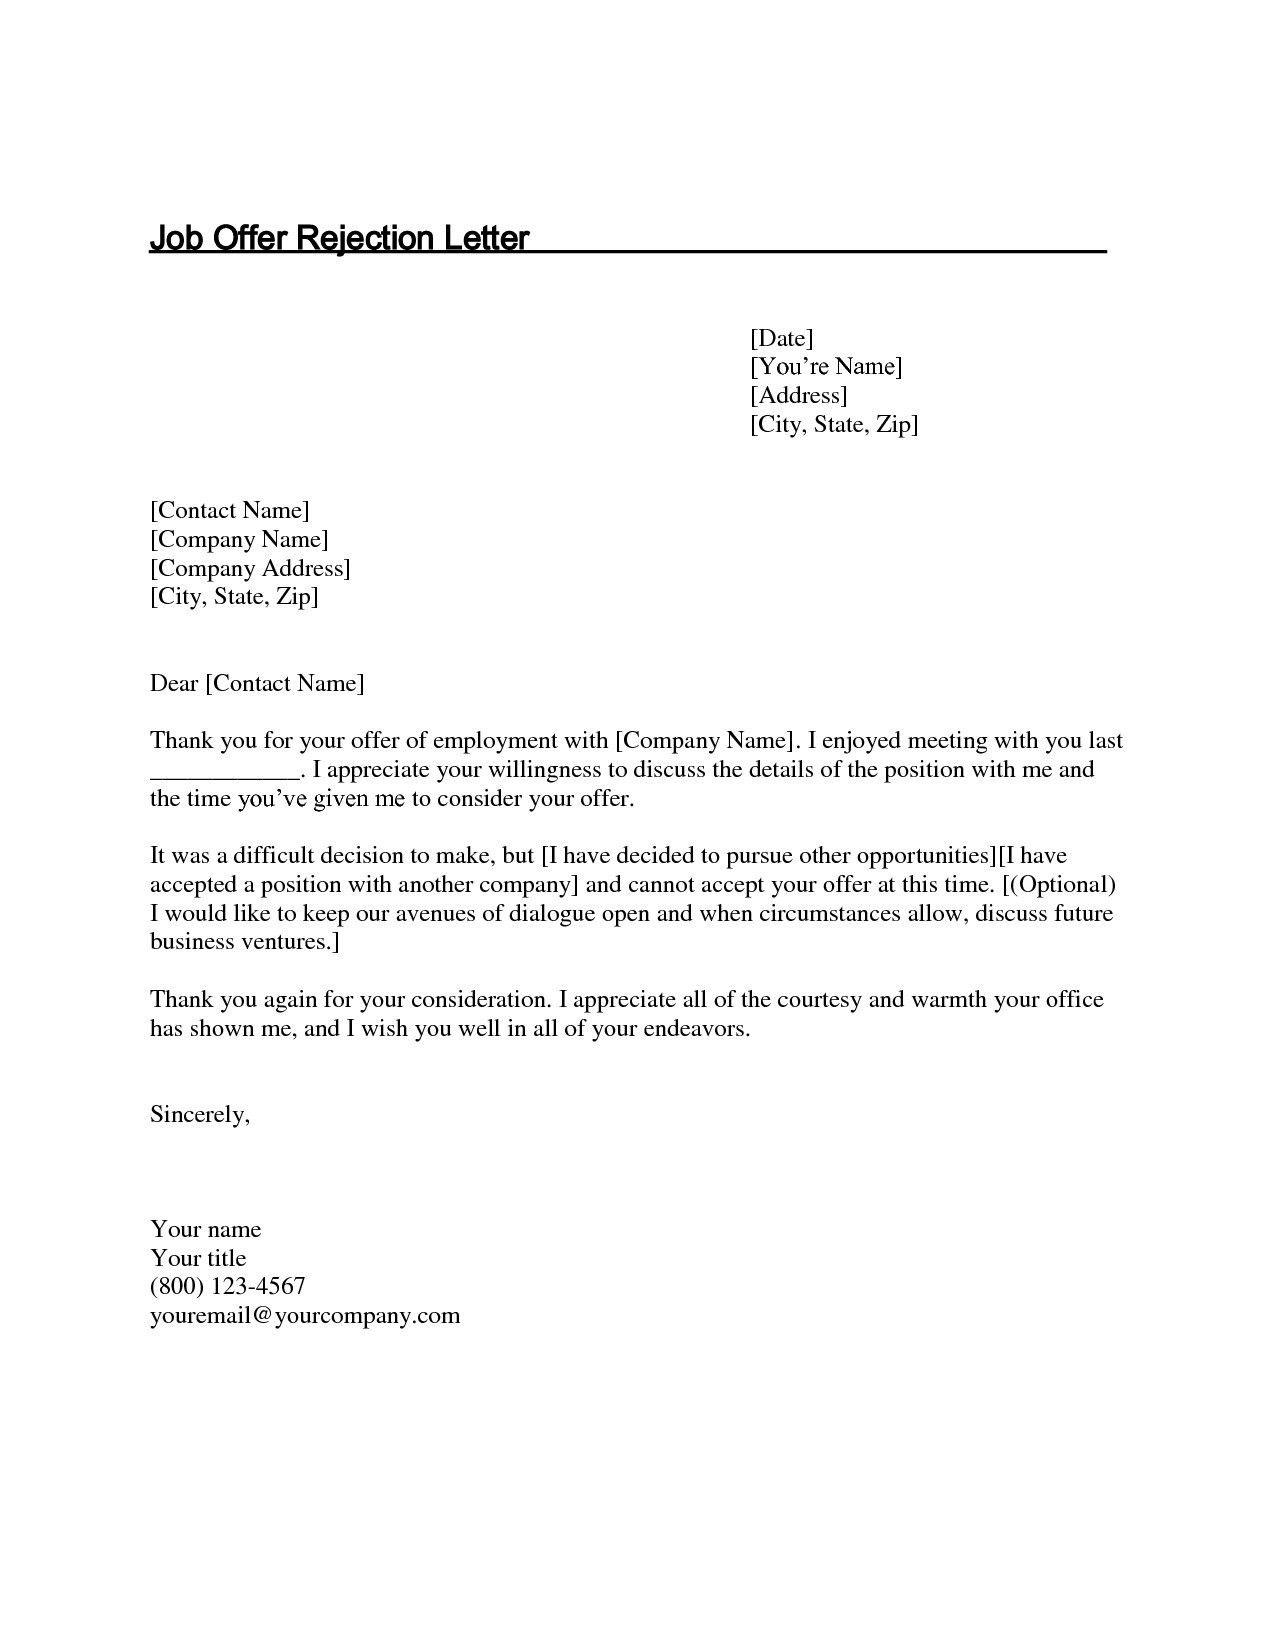 Download Fresh Job Decline Thank You Letter lettersample